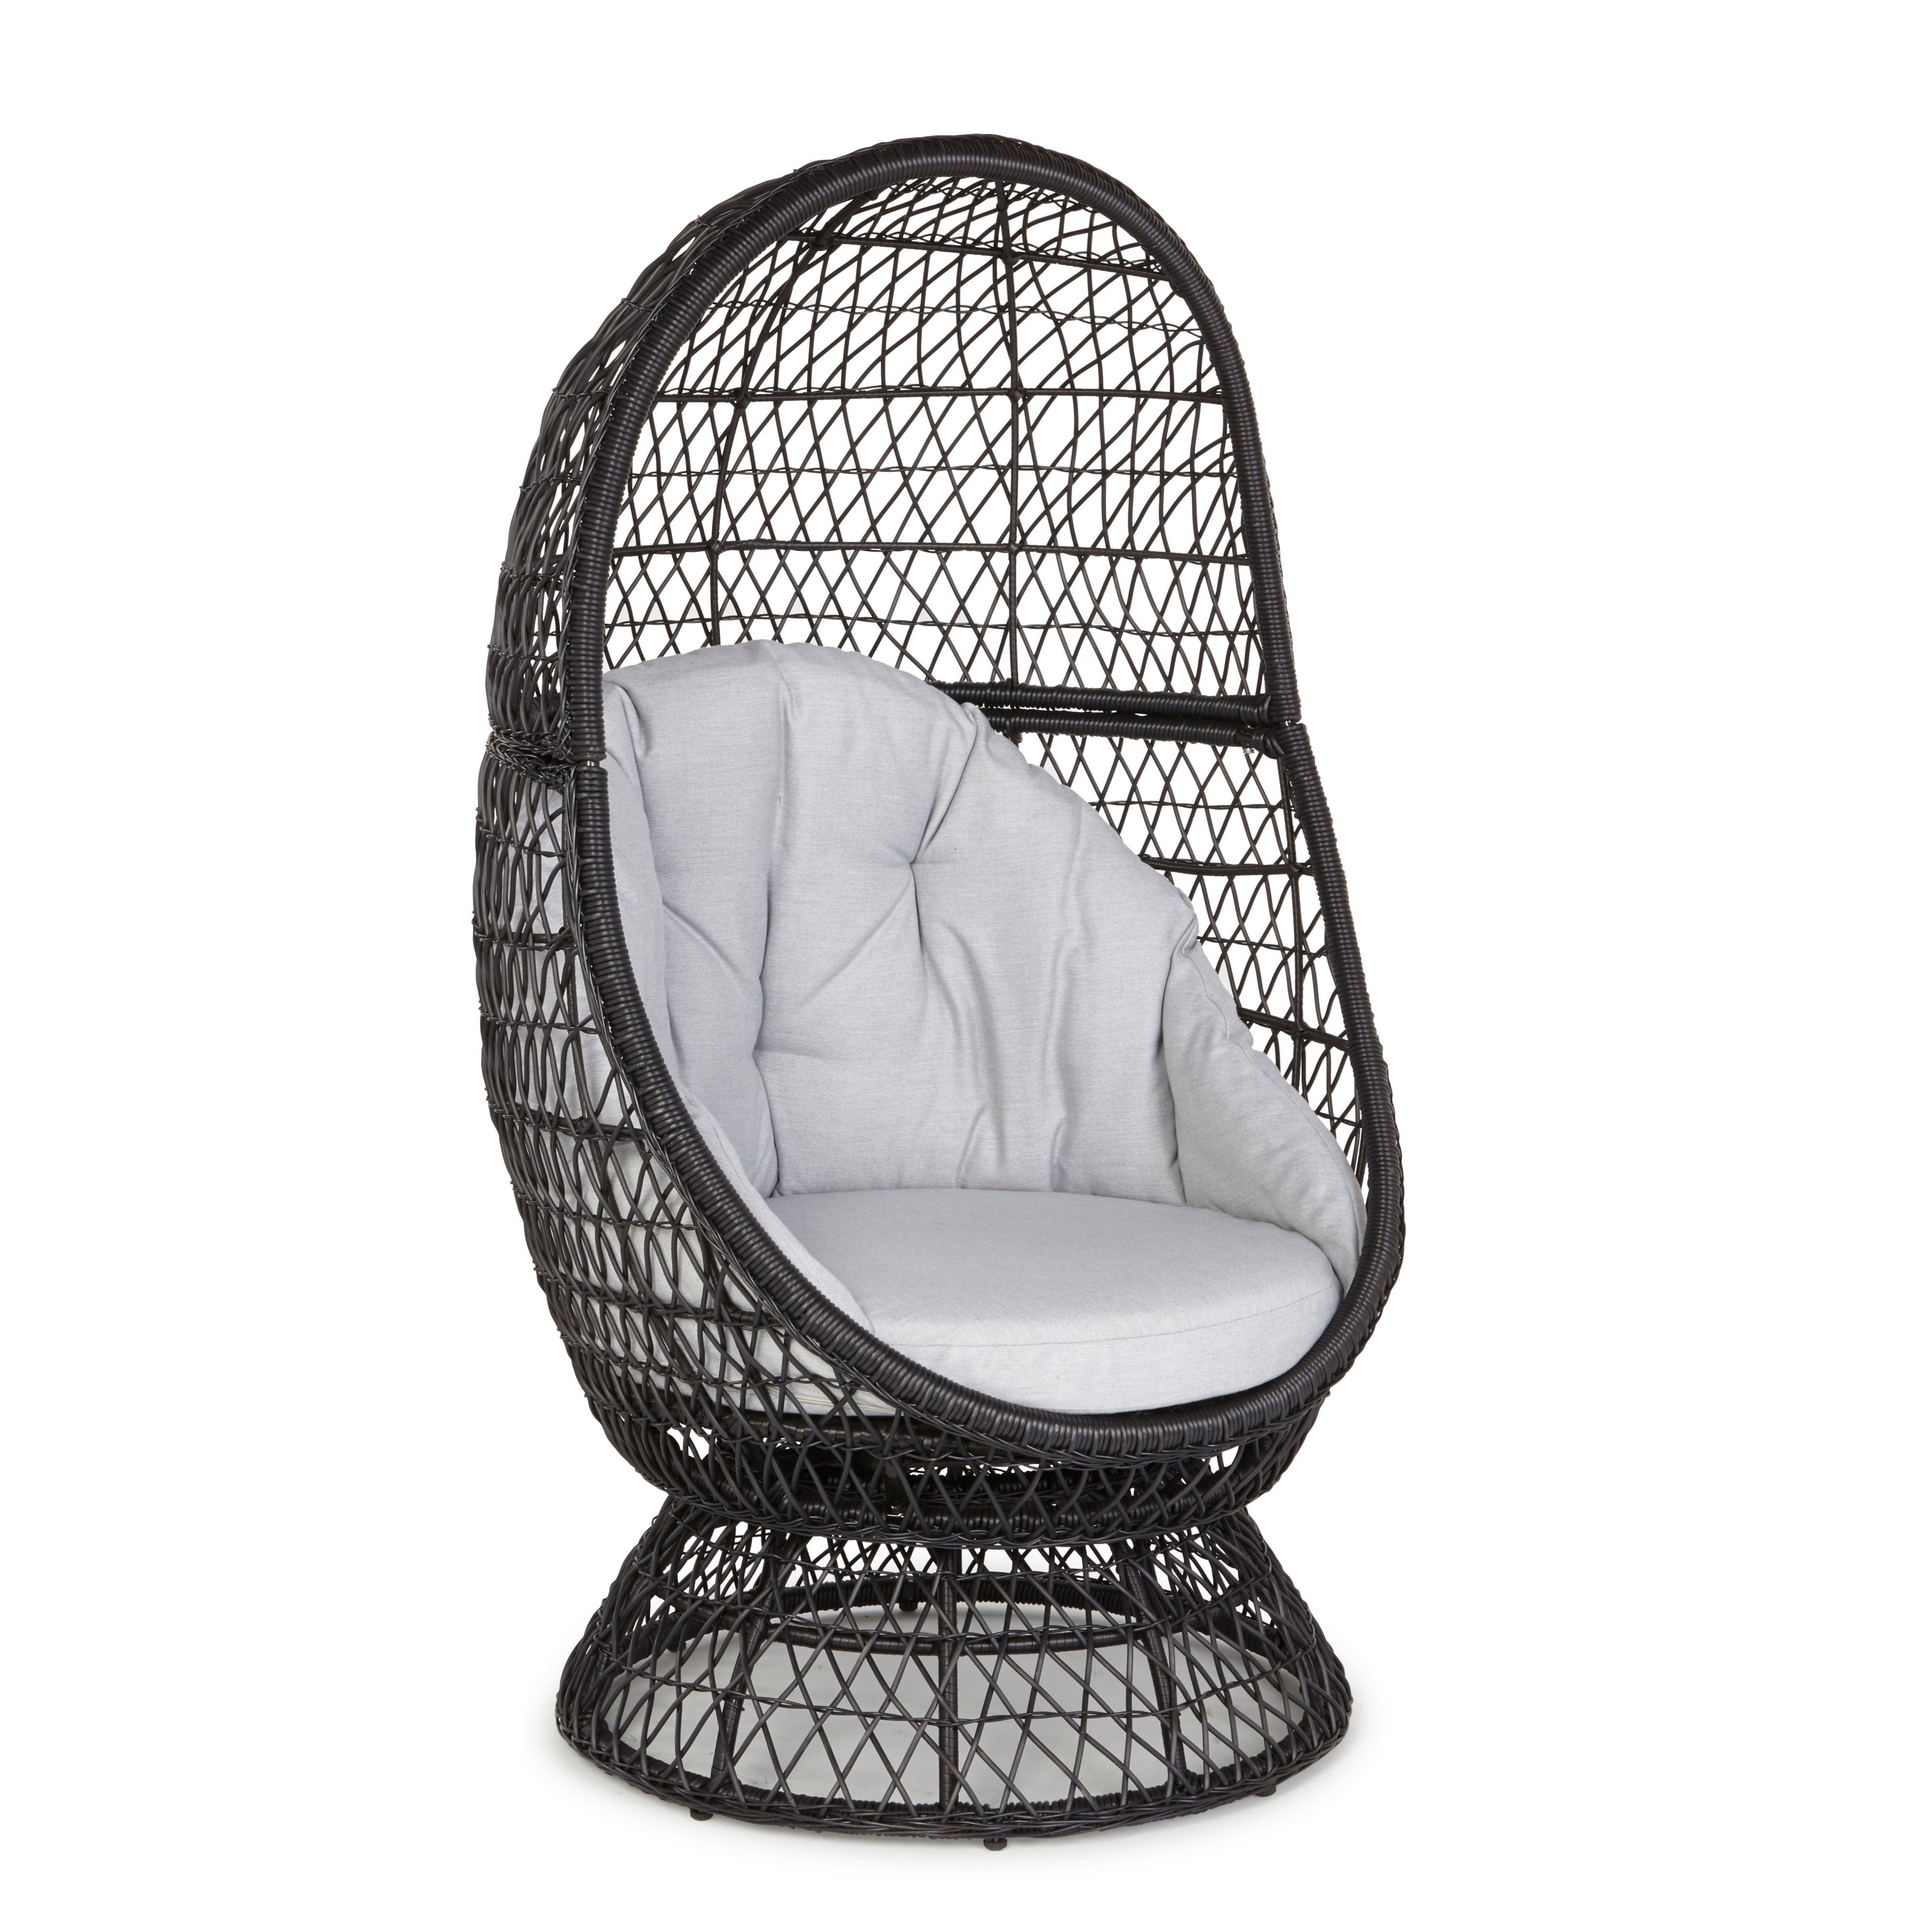 Hängesessel Outdoor Bauhaus Anya Metal Egg Chair Saw This At B Q Today And Had To Sit In It